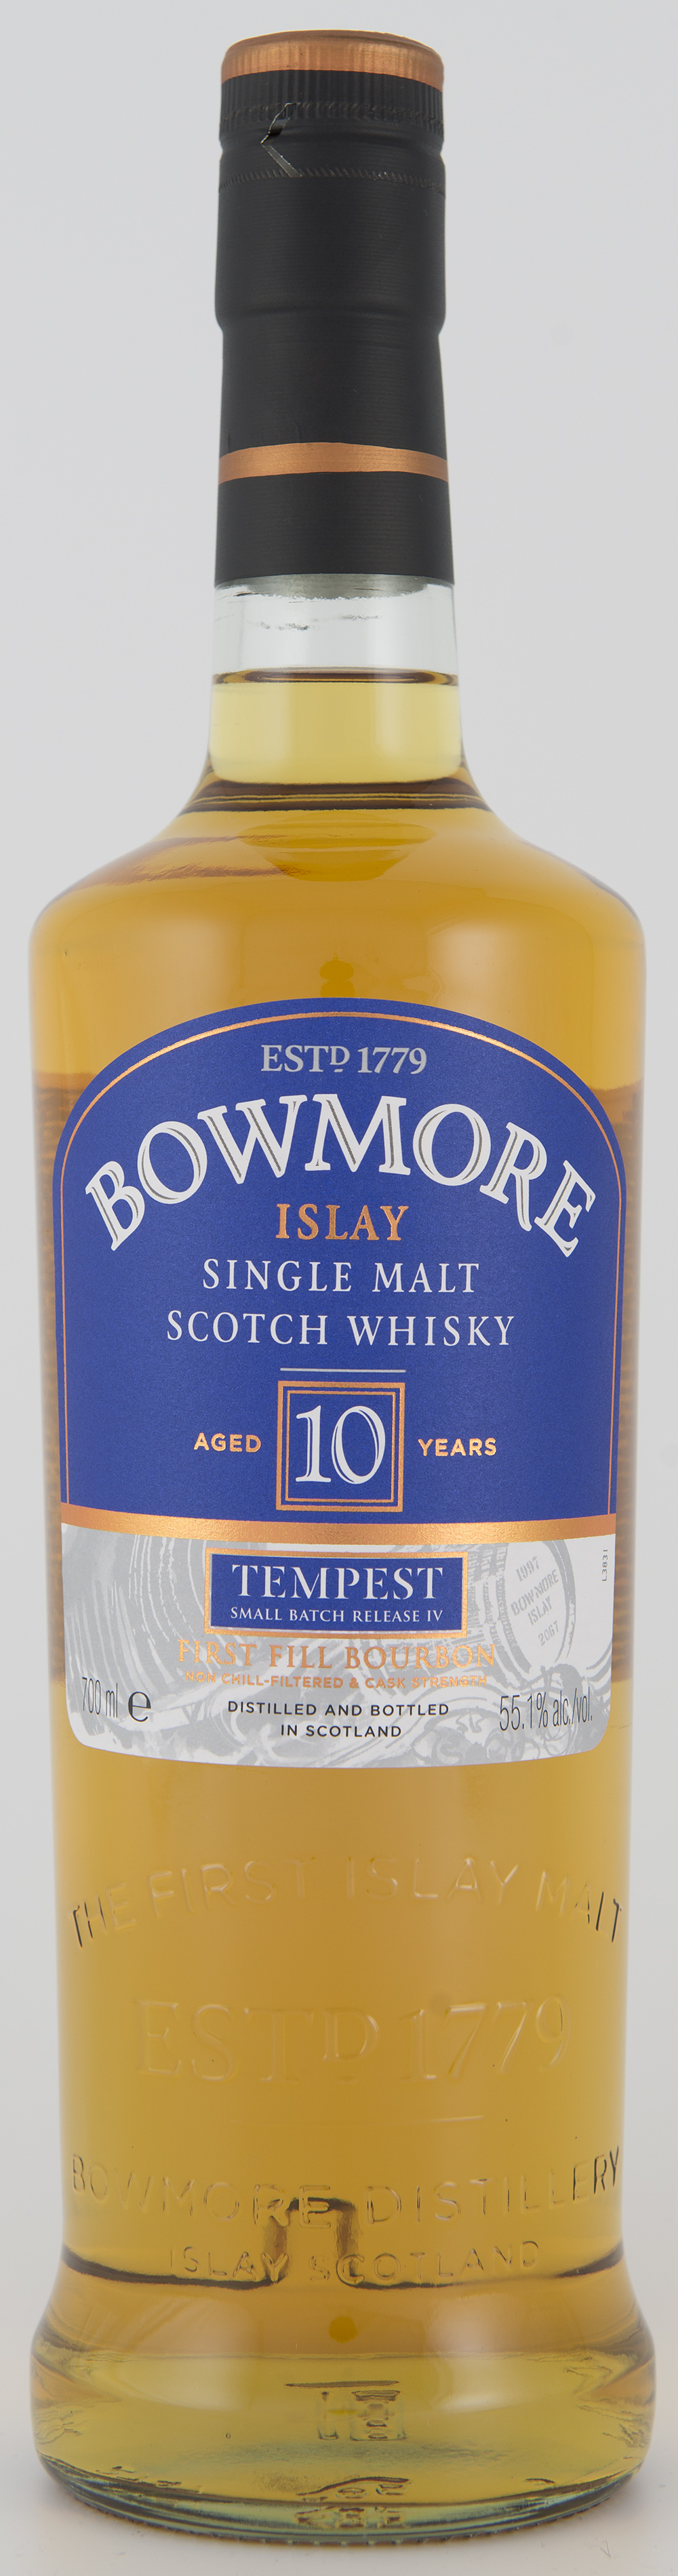 Billede: DSC_3207 Bowmore Tempest Batch IV - bottle front.jpg